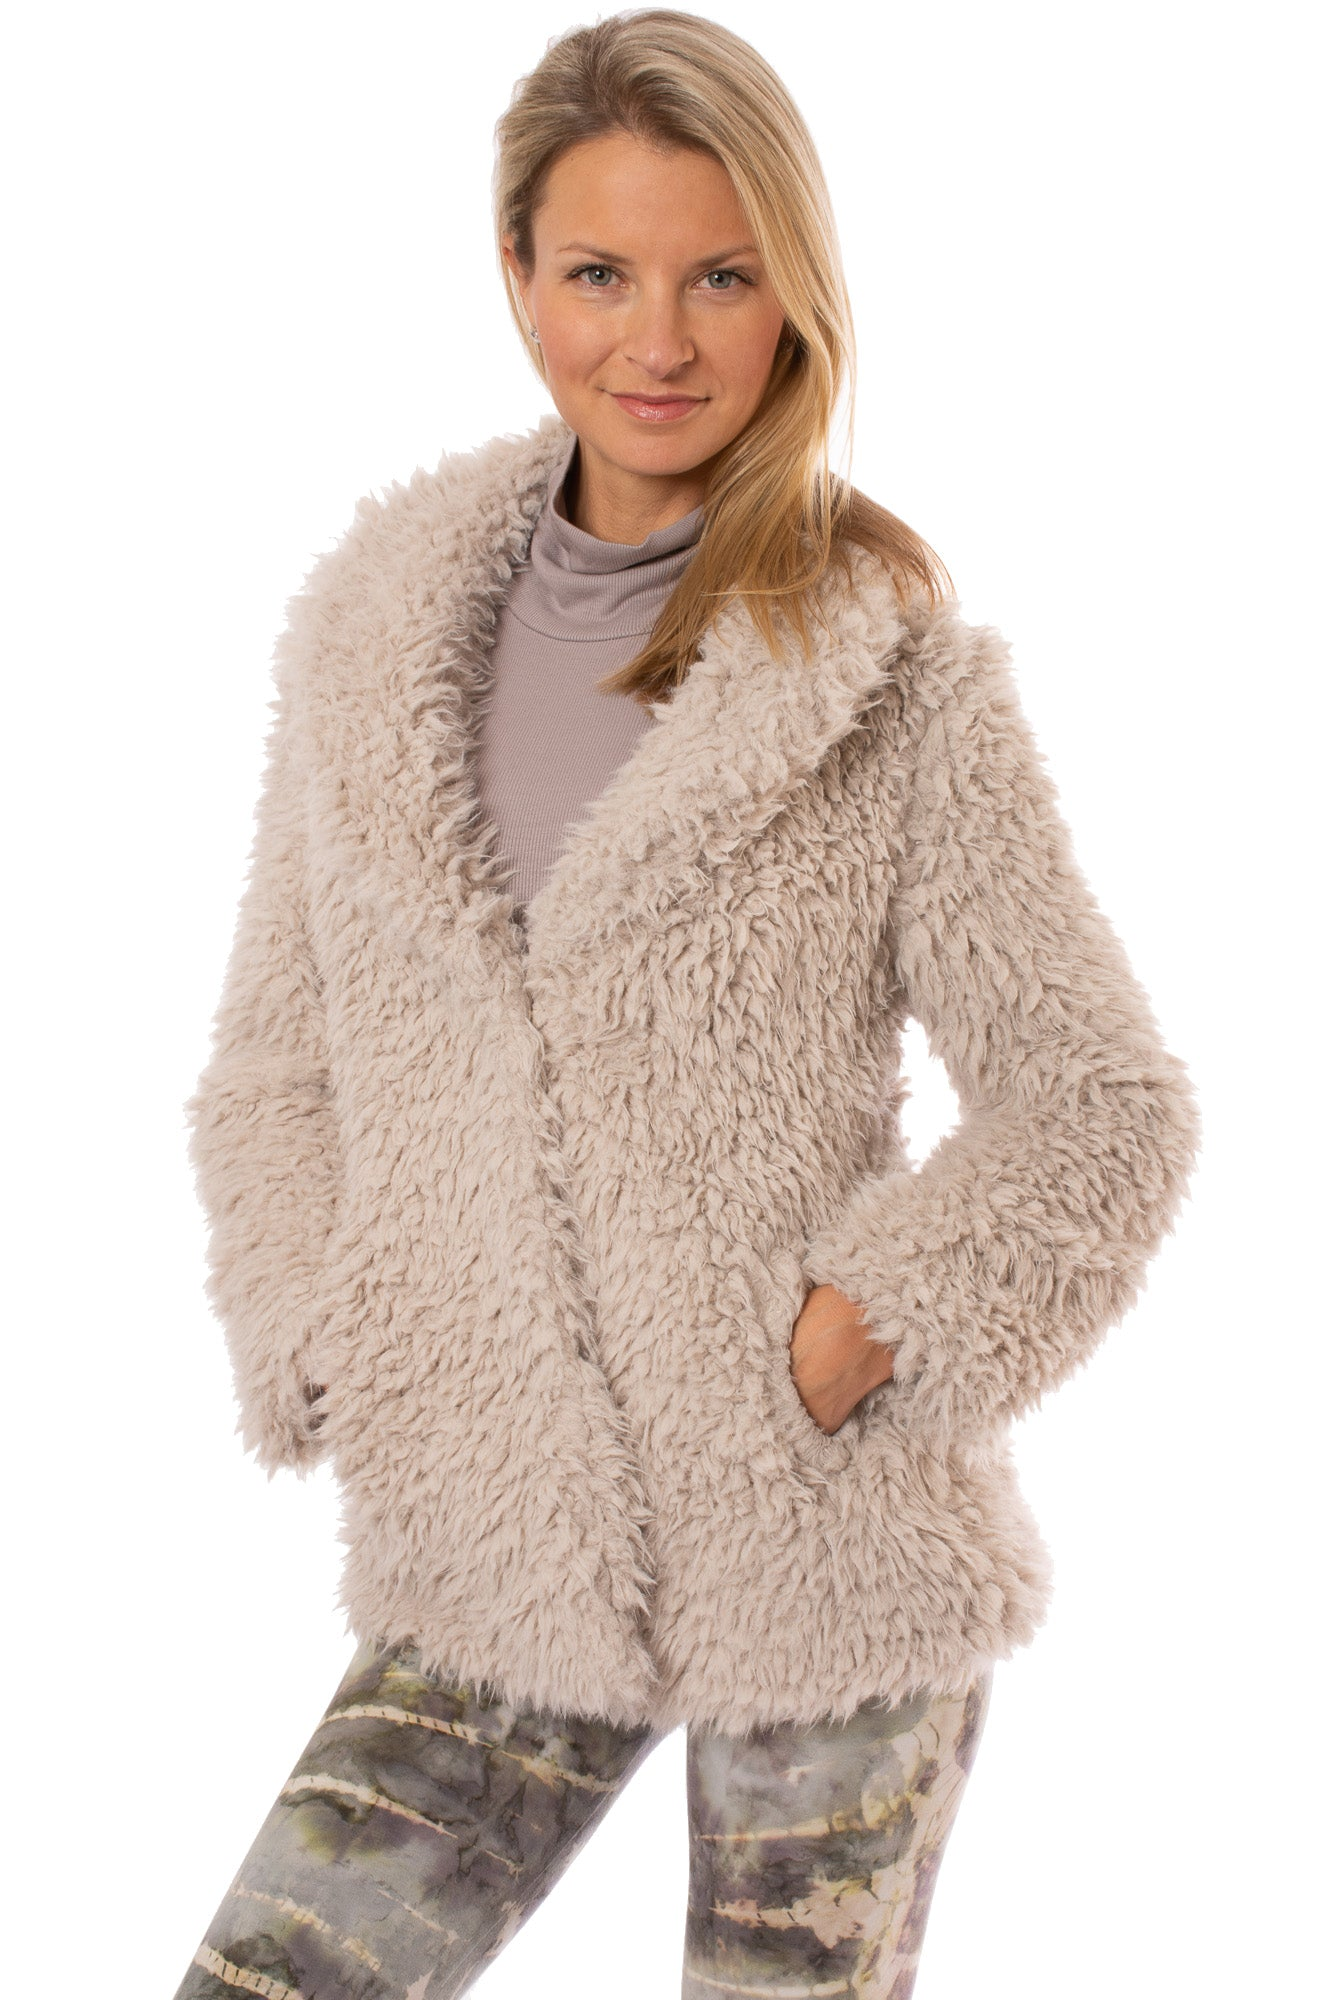 Tart Collections - Faux Sheep's Fur Tallulah Coat (T90945, Sheep Fur)